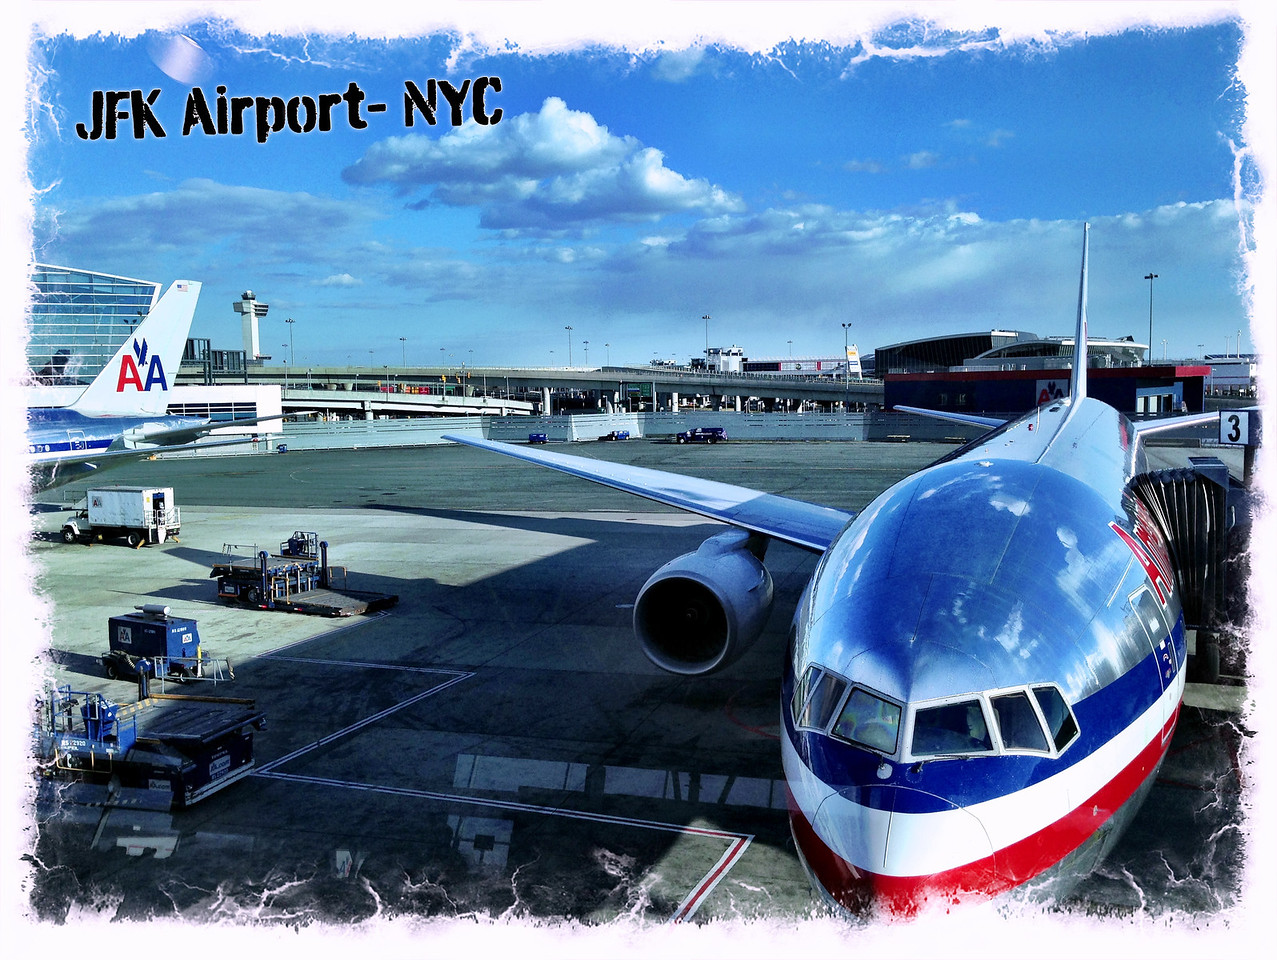 JFK Airport- New York